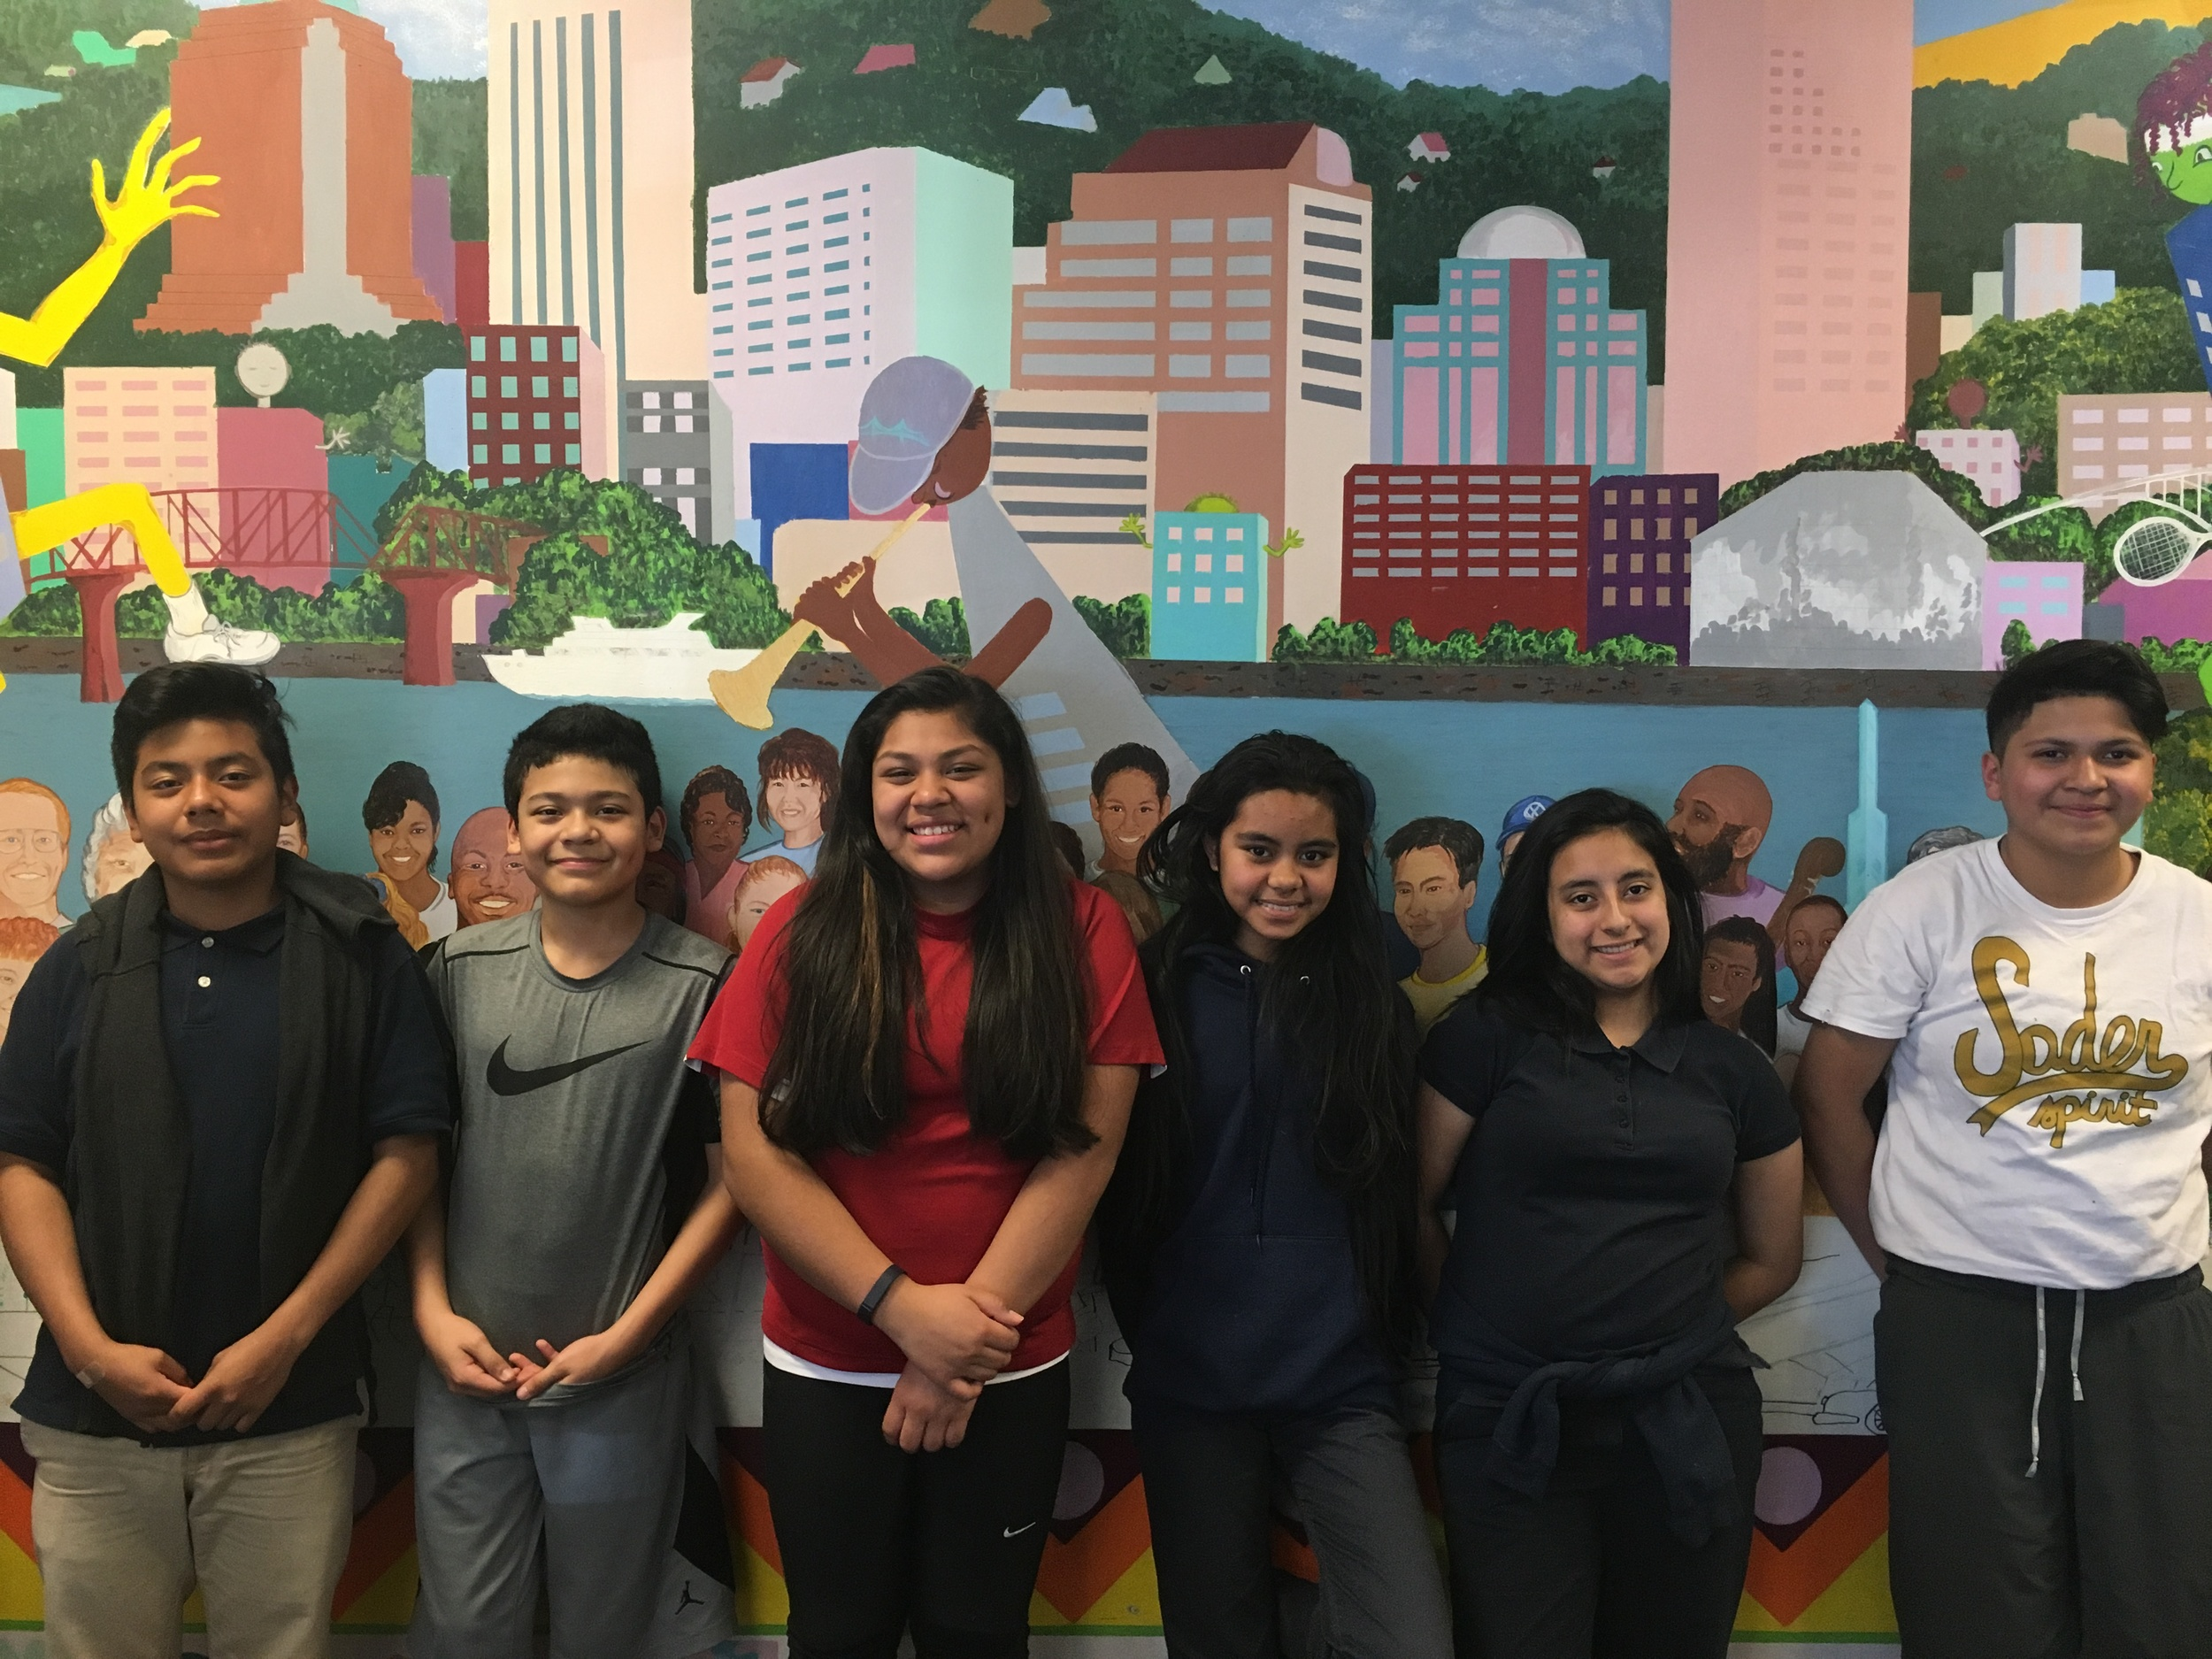 Cesar, Angel, Kassandra, Gemma, Emamaria, and Mallory are 7th Graders in Portland Tennis & Education who are applying for the Jack Kent Cooke Young Scholars Program.